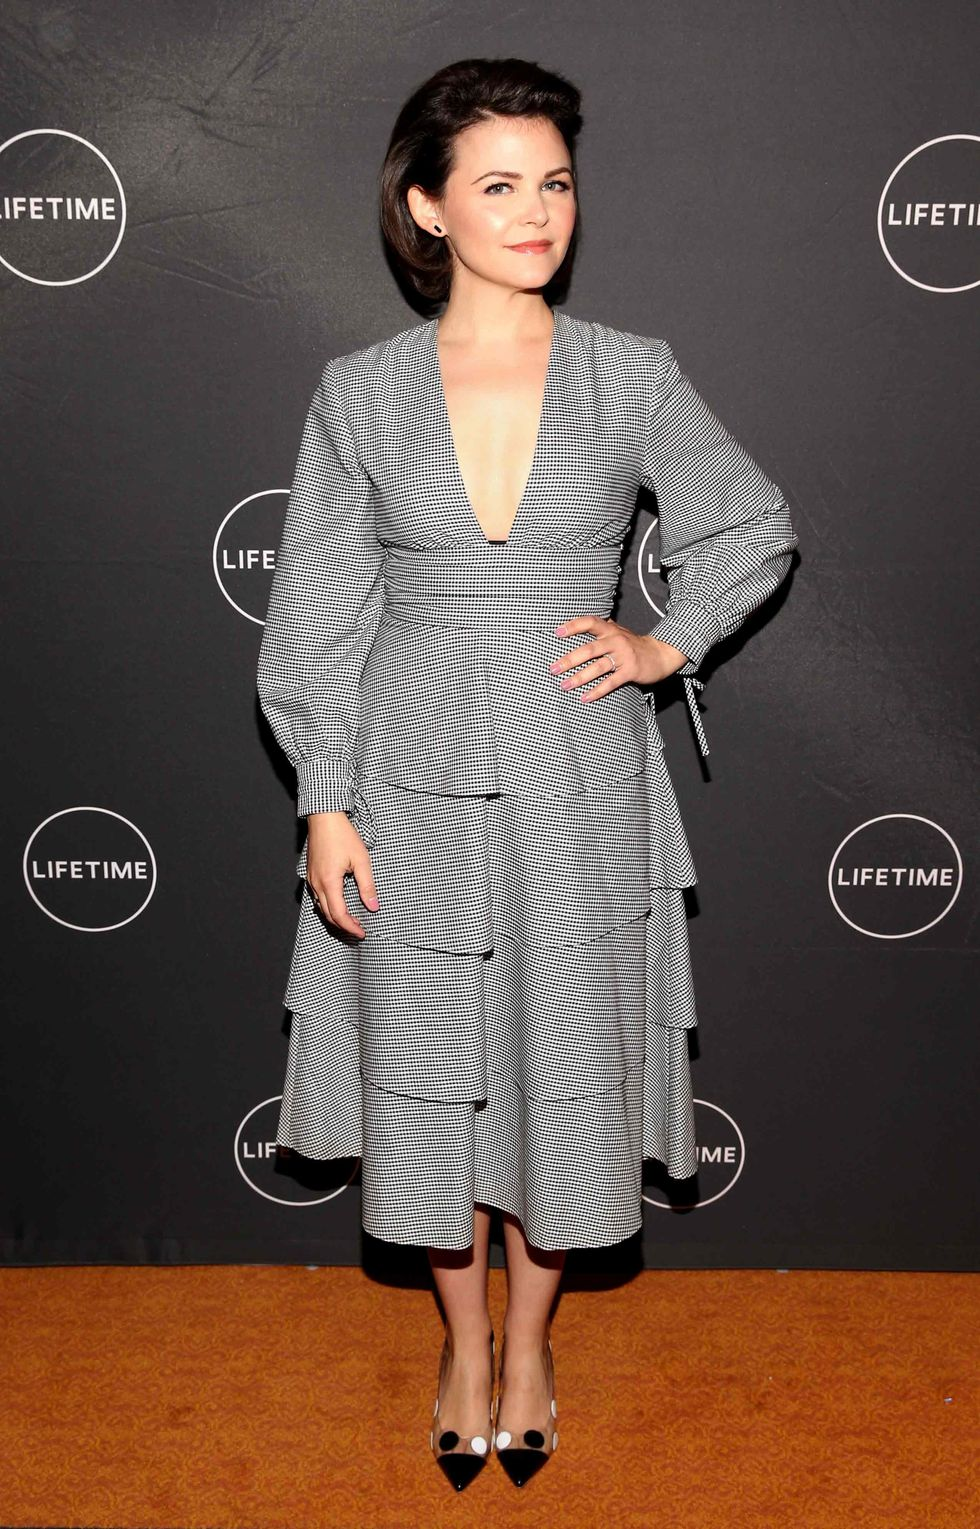 Ginnifer Goodwin in a gray designer dress.